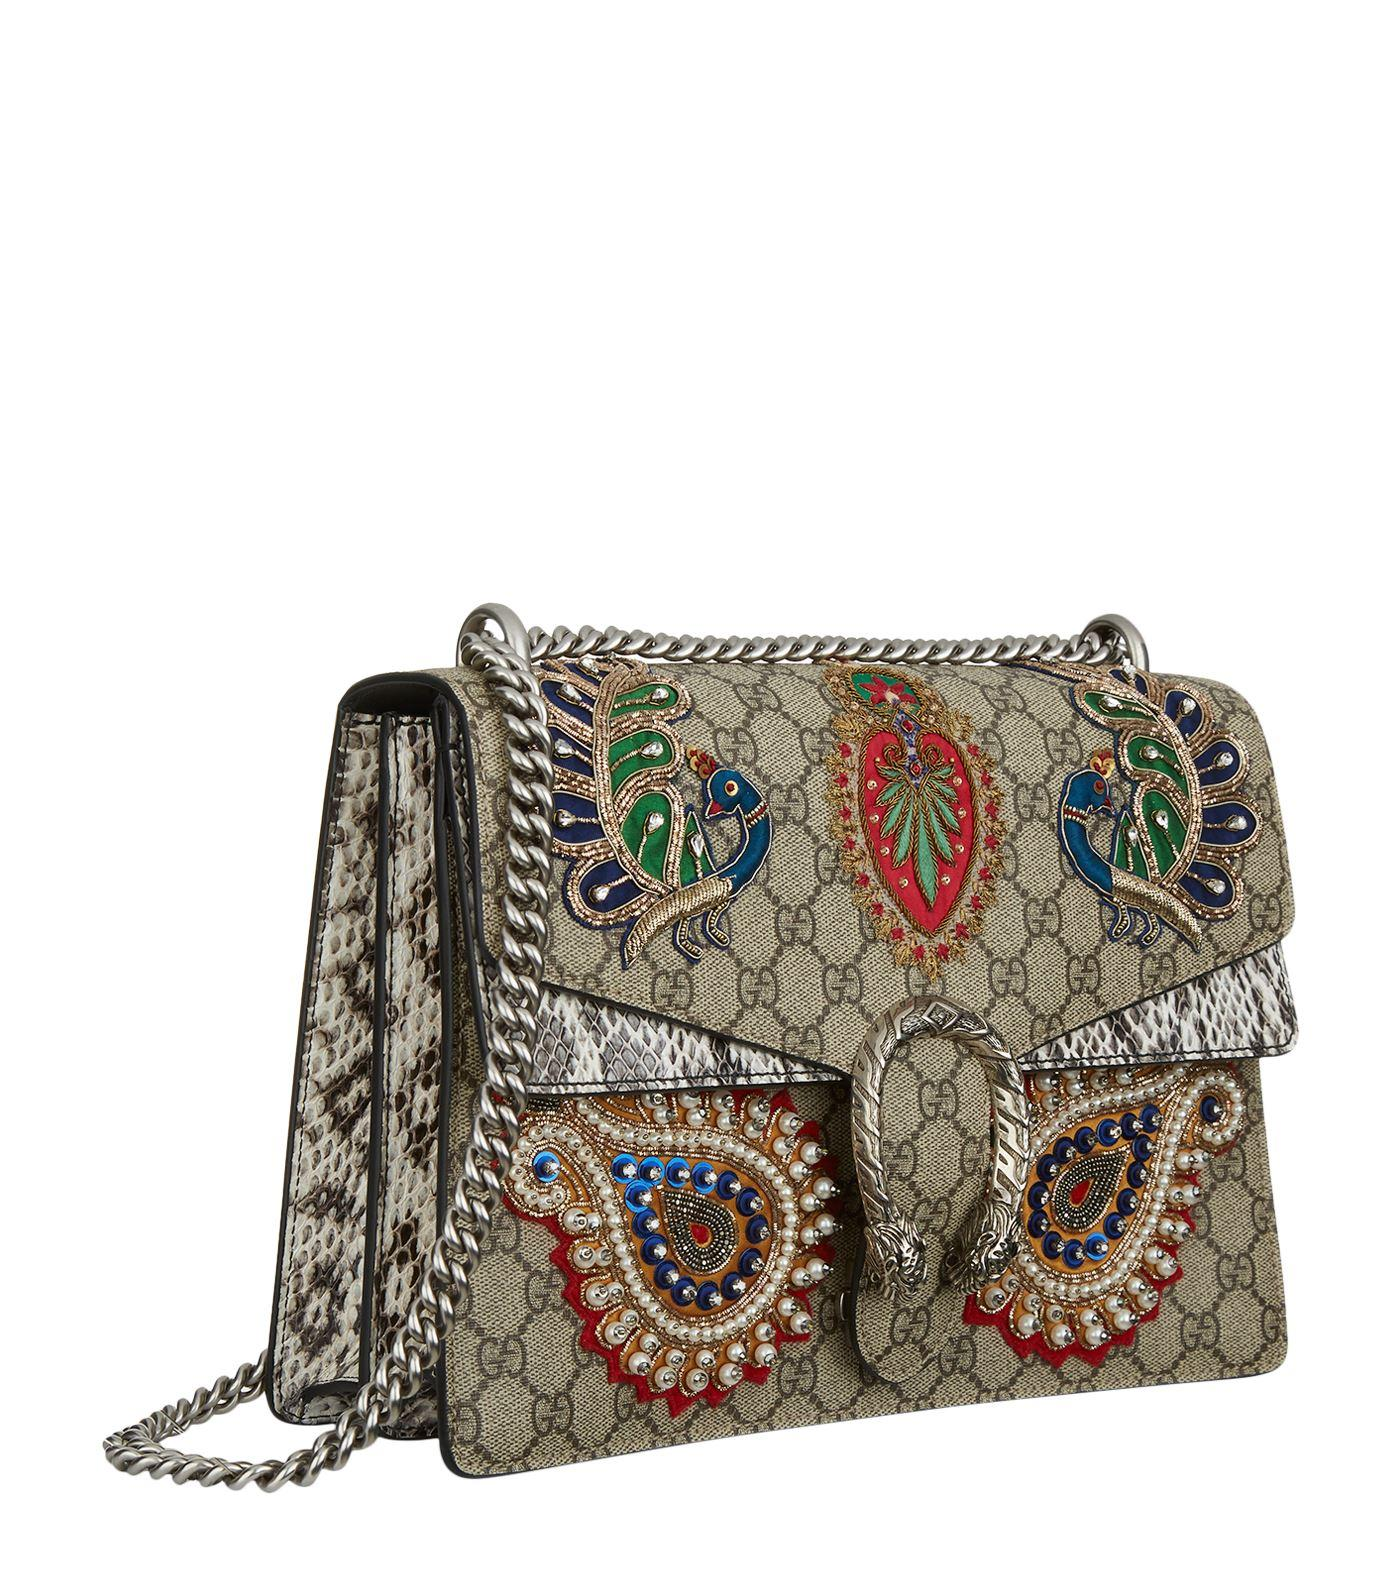 Gucci large dionysus peacock embroidered shoulder bag in